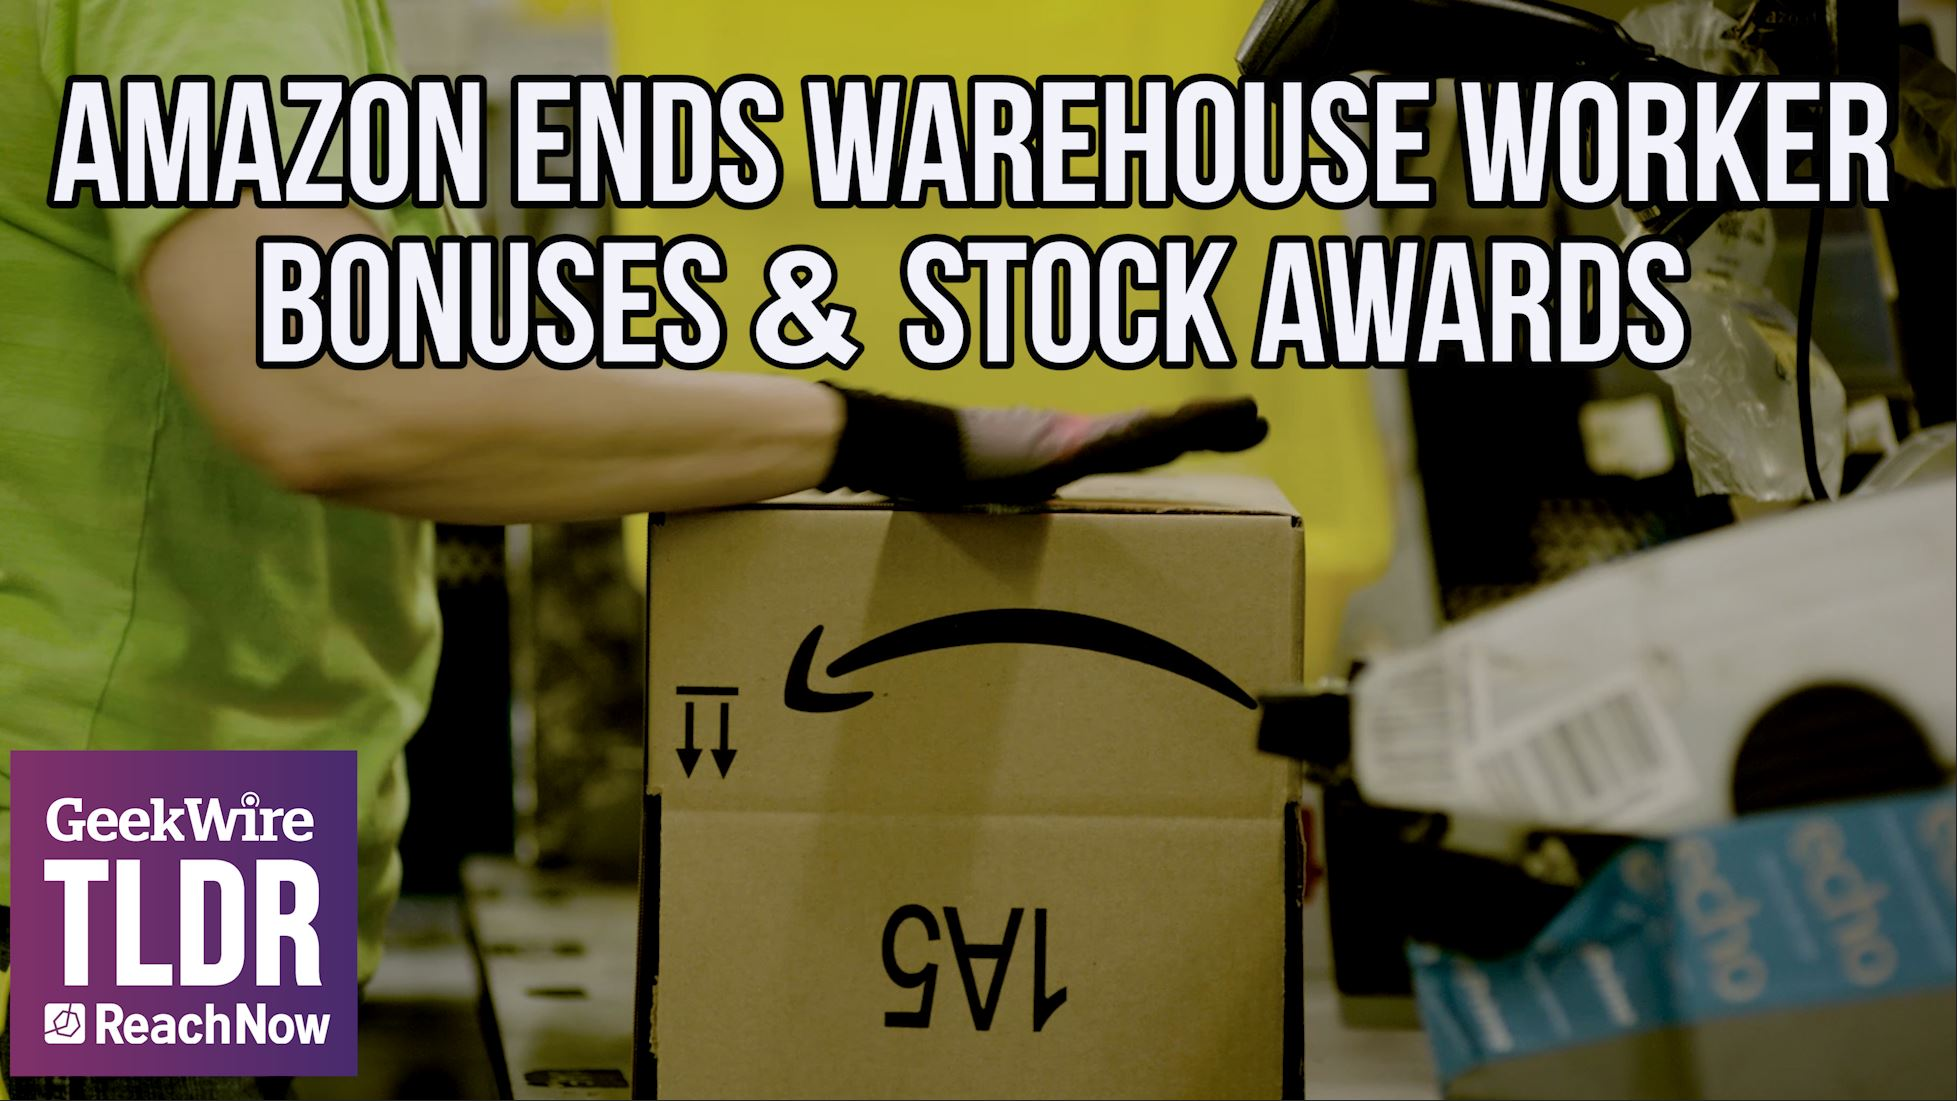 TLDR: Amazon ends warehouse worker bonuses & stock awards